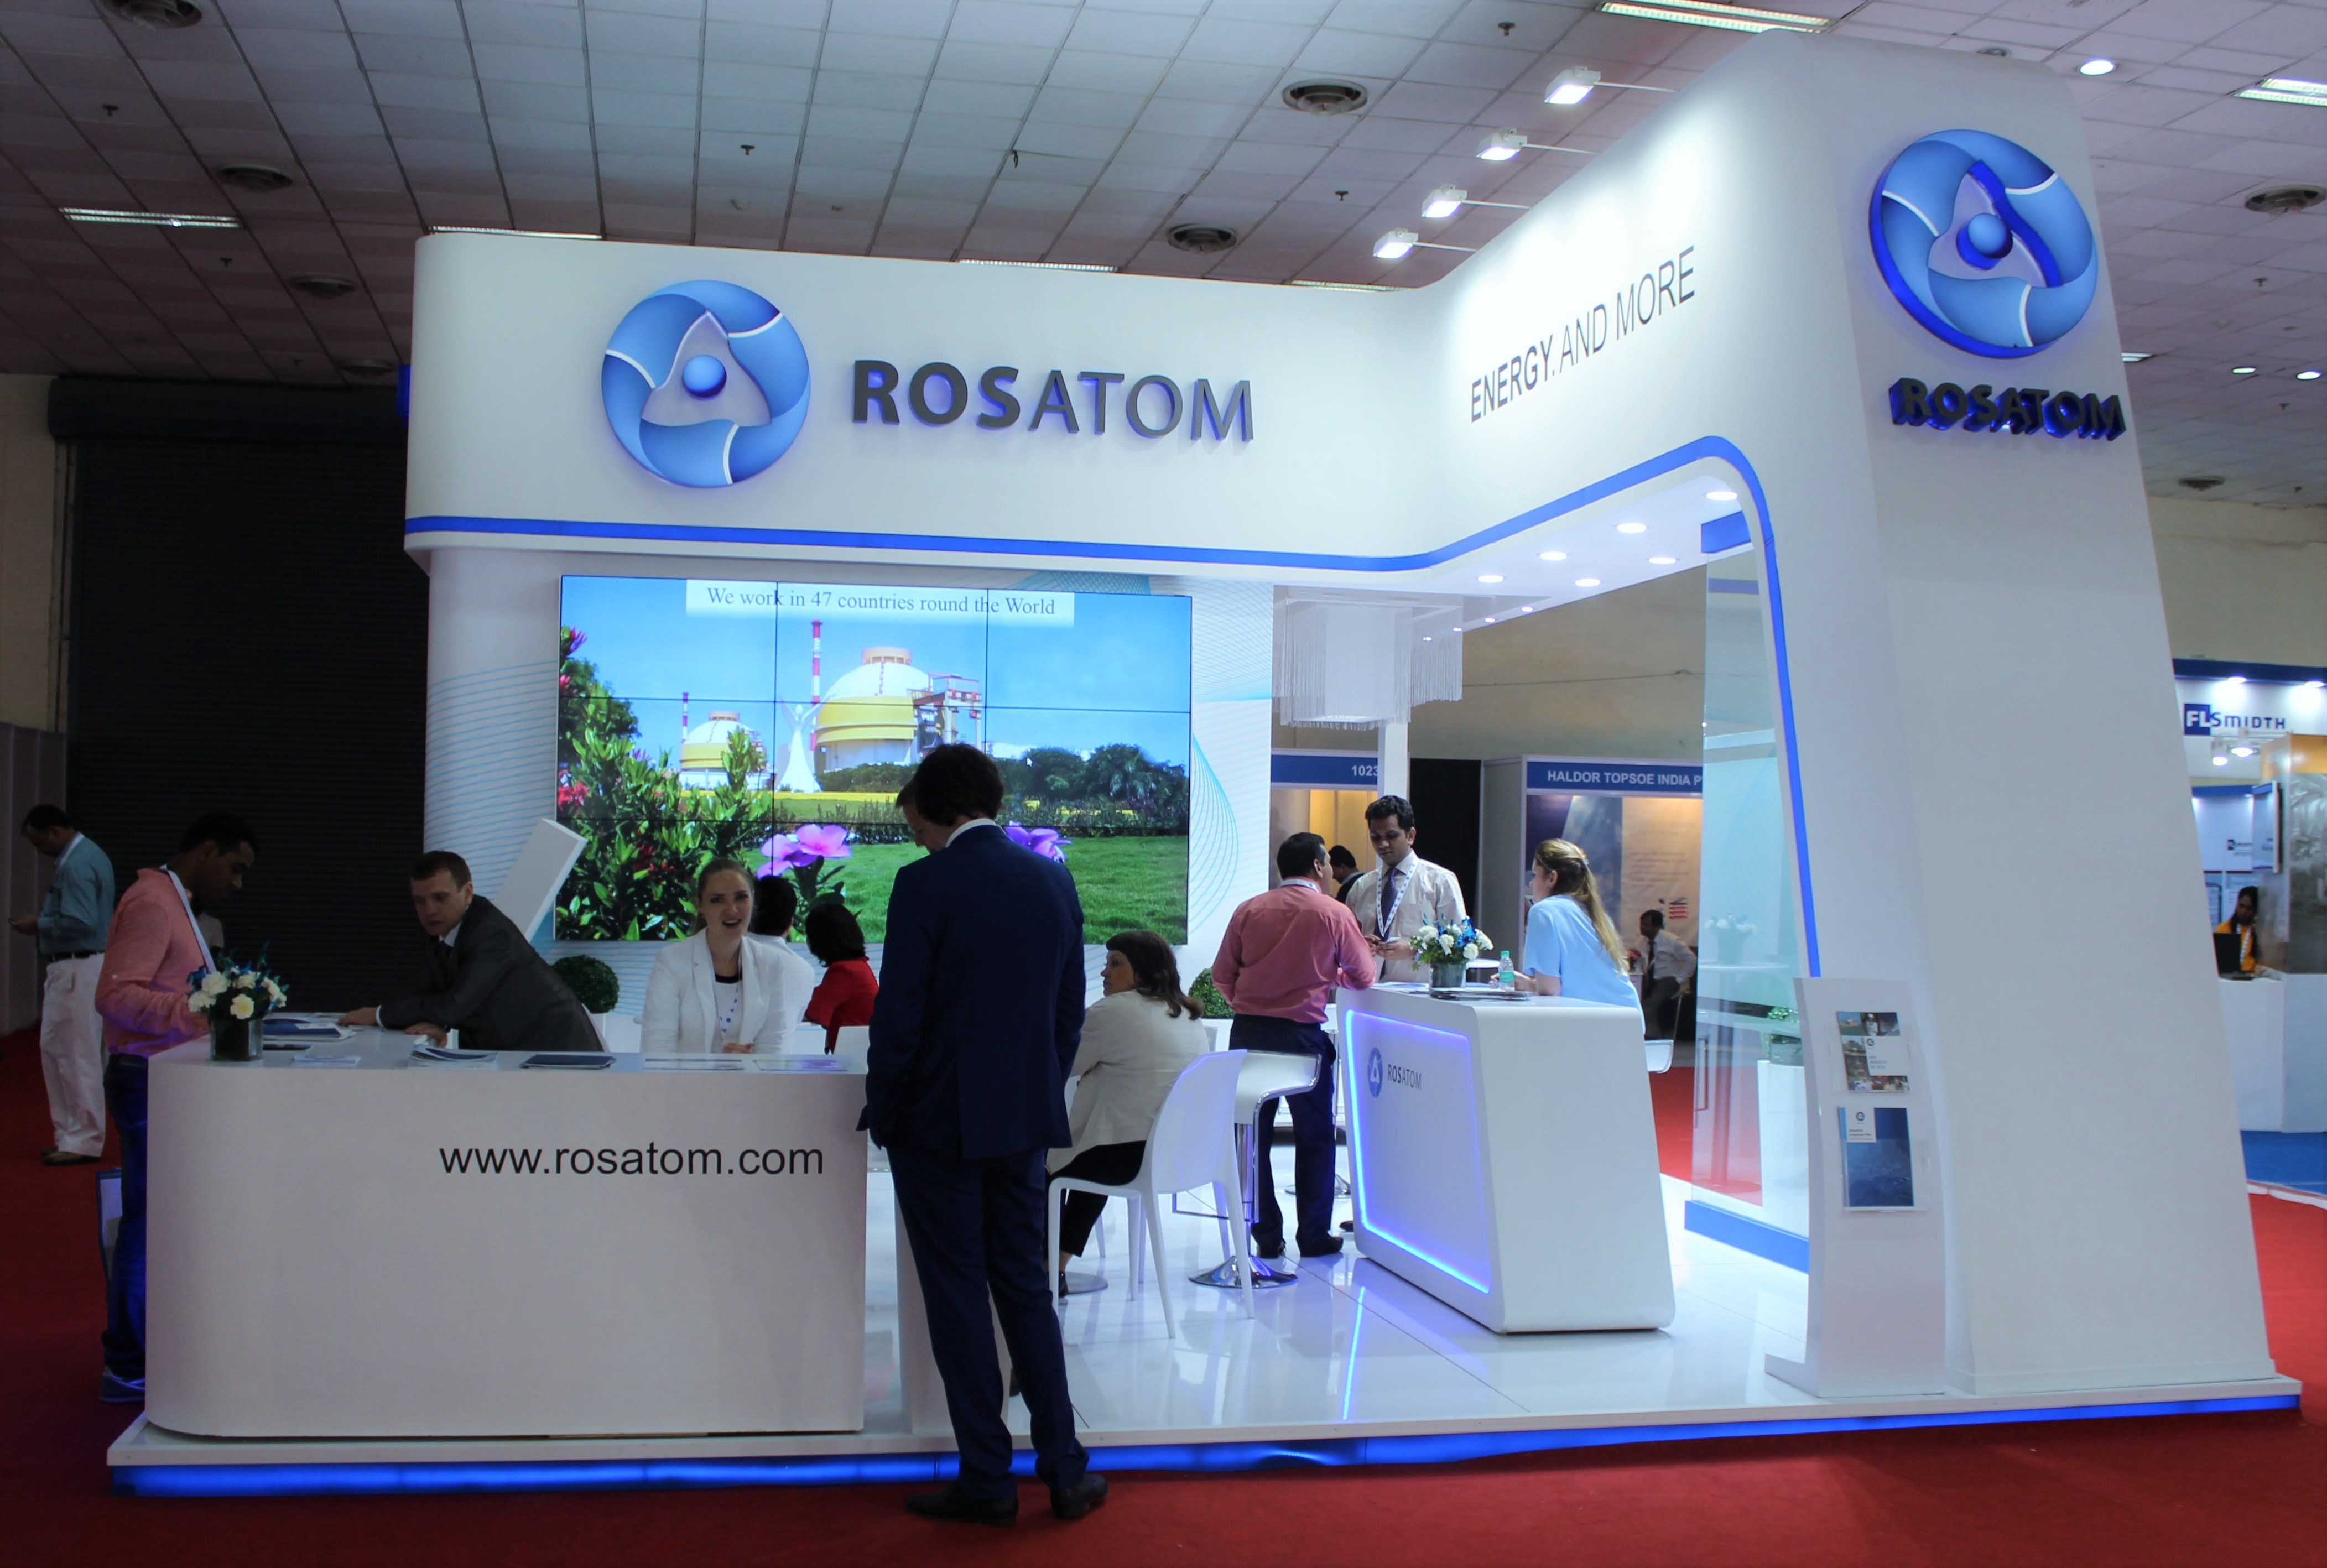 Russia's state-run nuclear power corporation, Rosatom, built the KNPP, which is now being operated by the Nuclear Power Corporation of India (NPCIL).